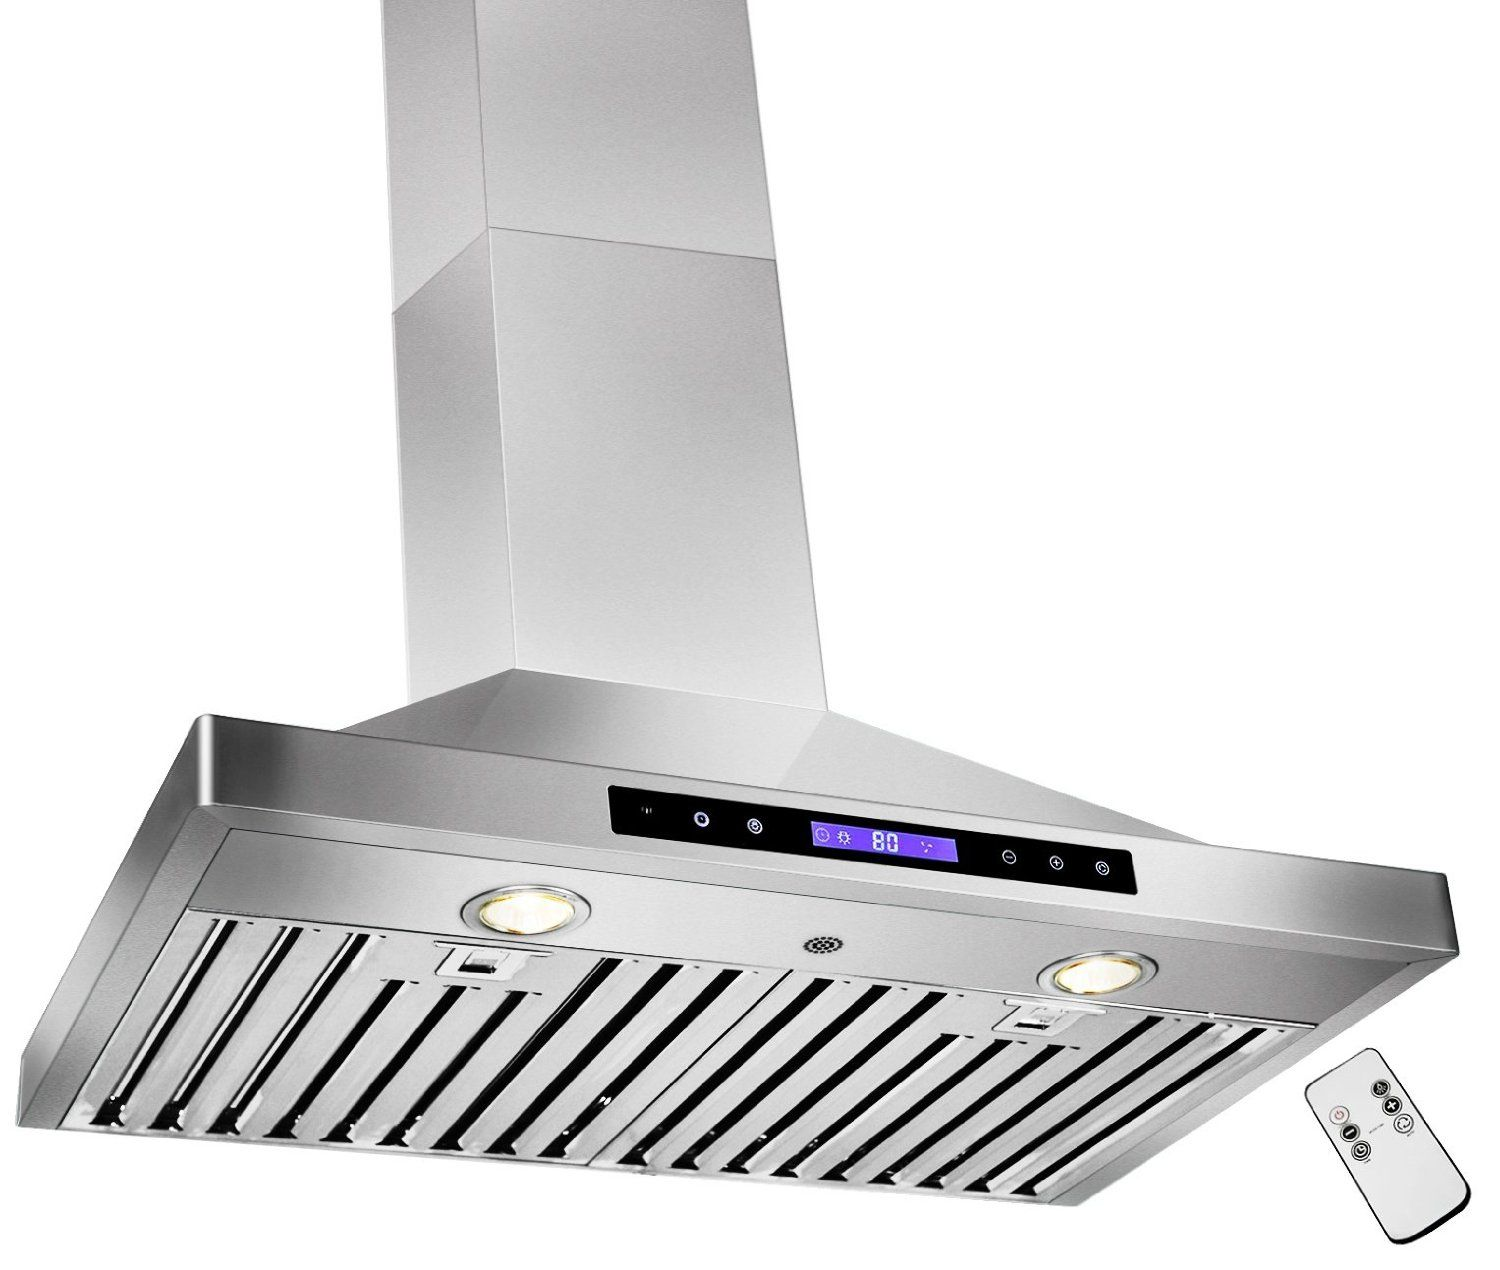 The Steep Discount And Perfect Reviews Seem A Bit Suspicous But If It S Legit Amazon Stainless Steel Range Hood Stainless Steel Range Wall Mount Range Hood